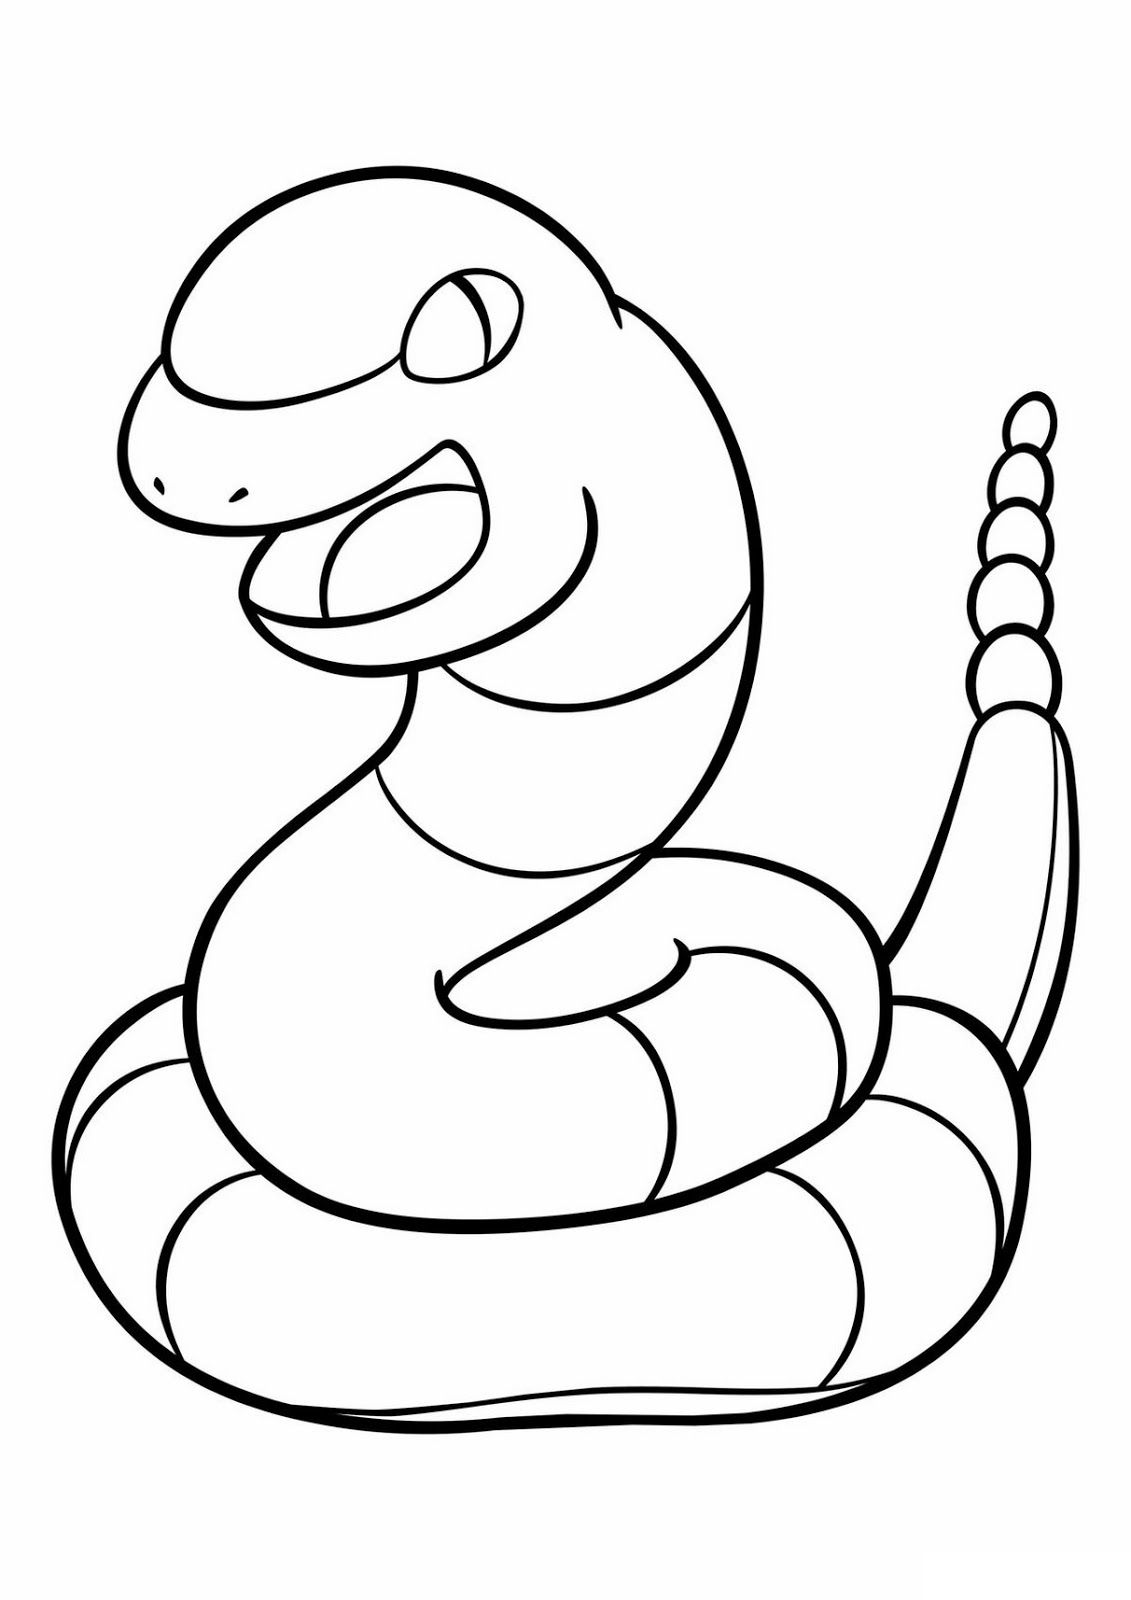 Cute Anime Pokemon Go Ekans Coloring Pages Pokemon Coloring Pages Pokemon Coloring Pokemon Drawings